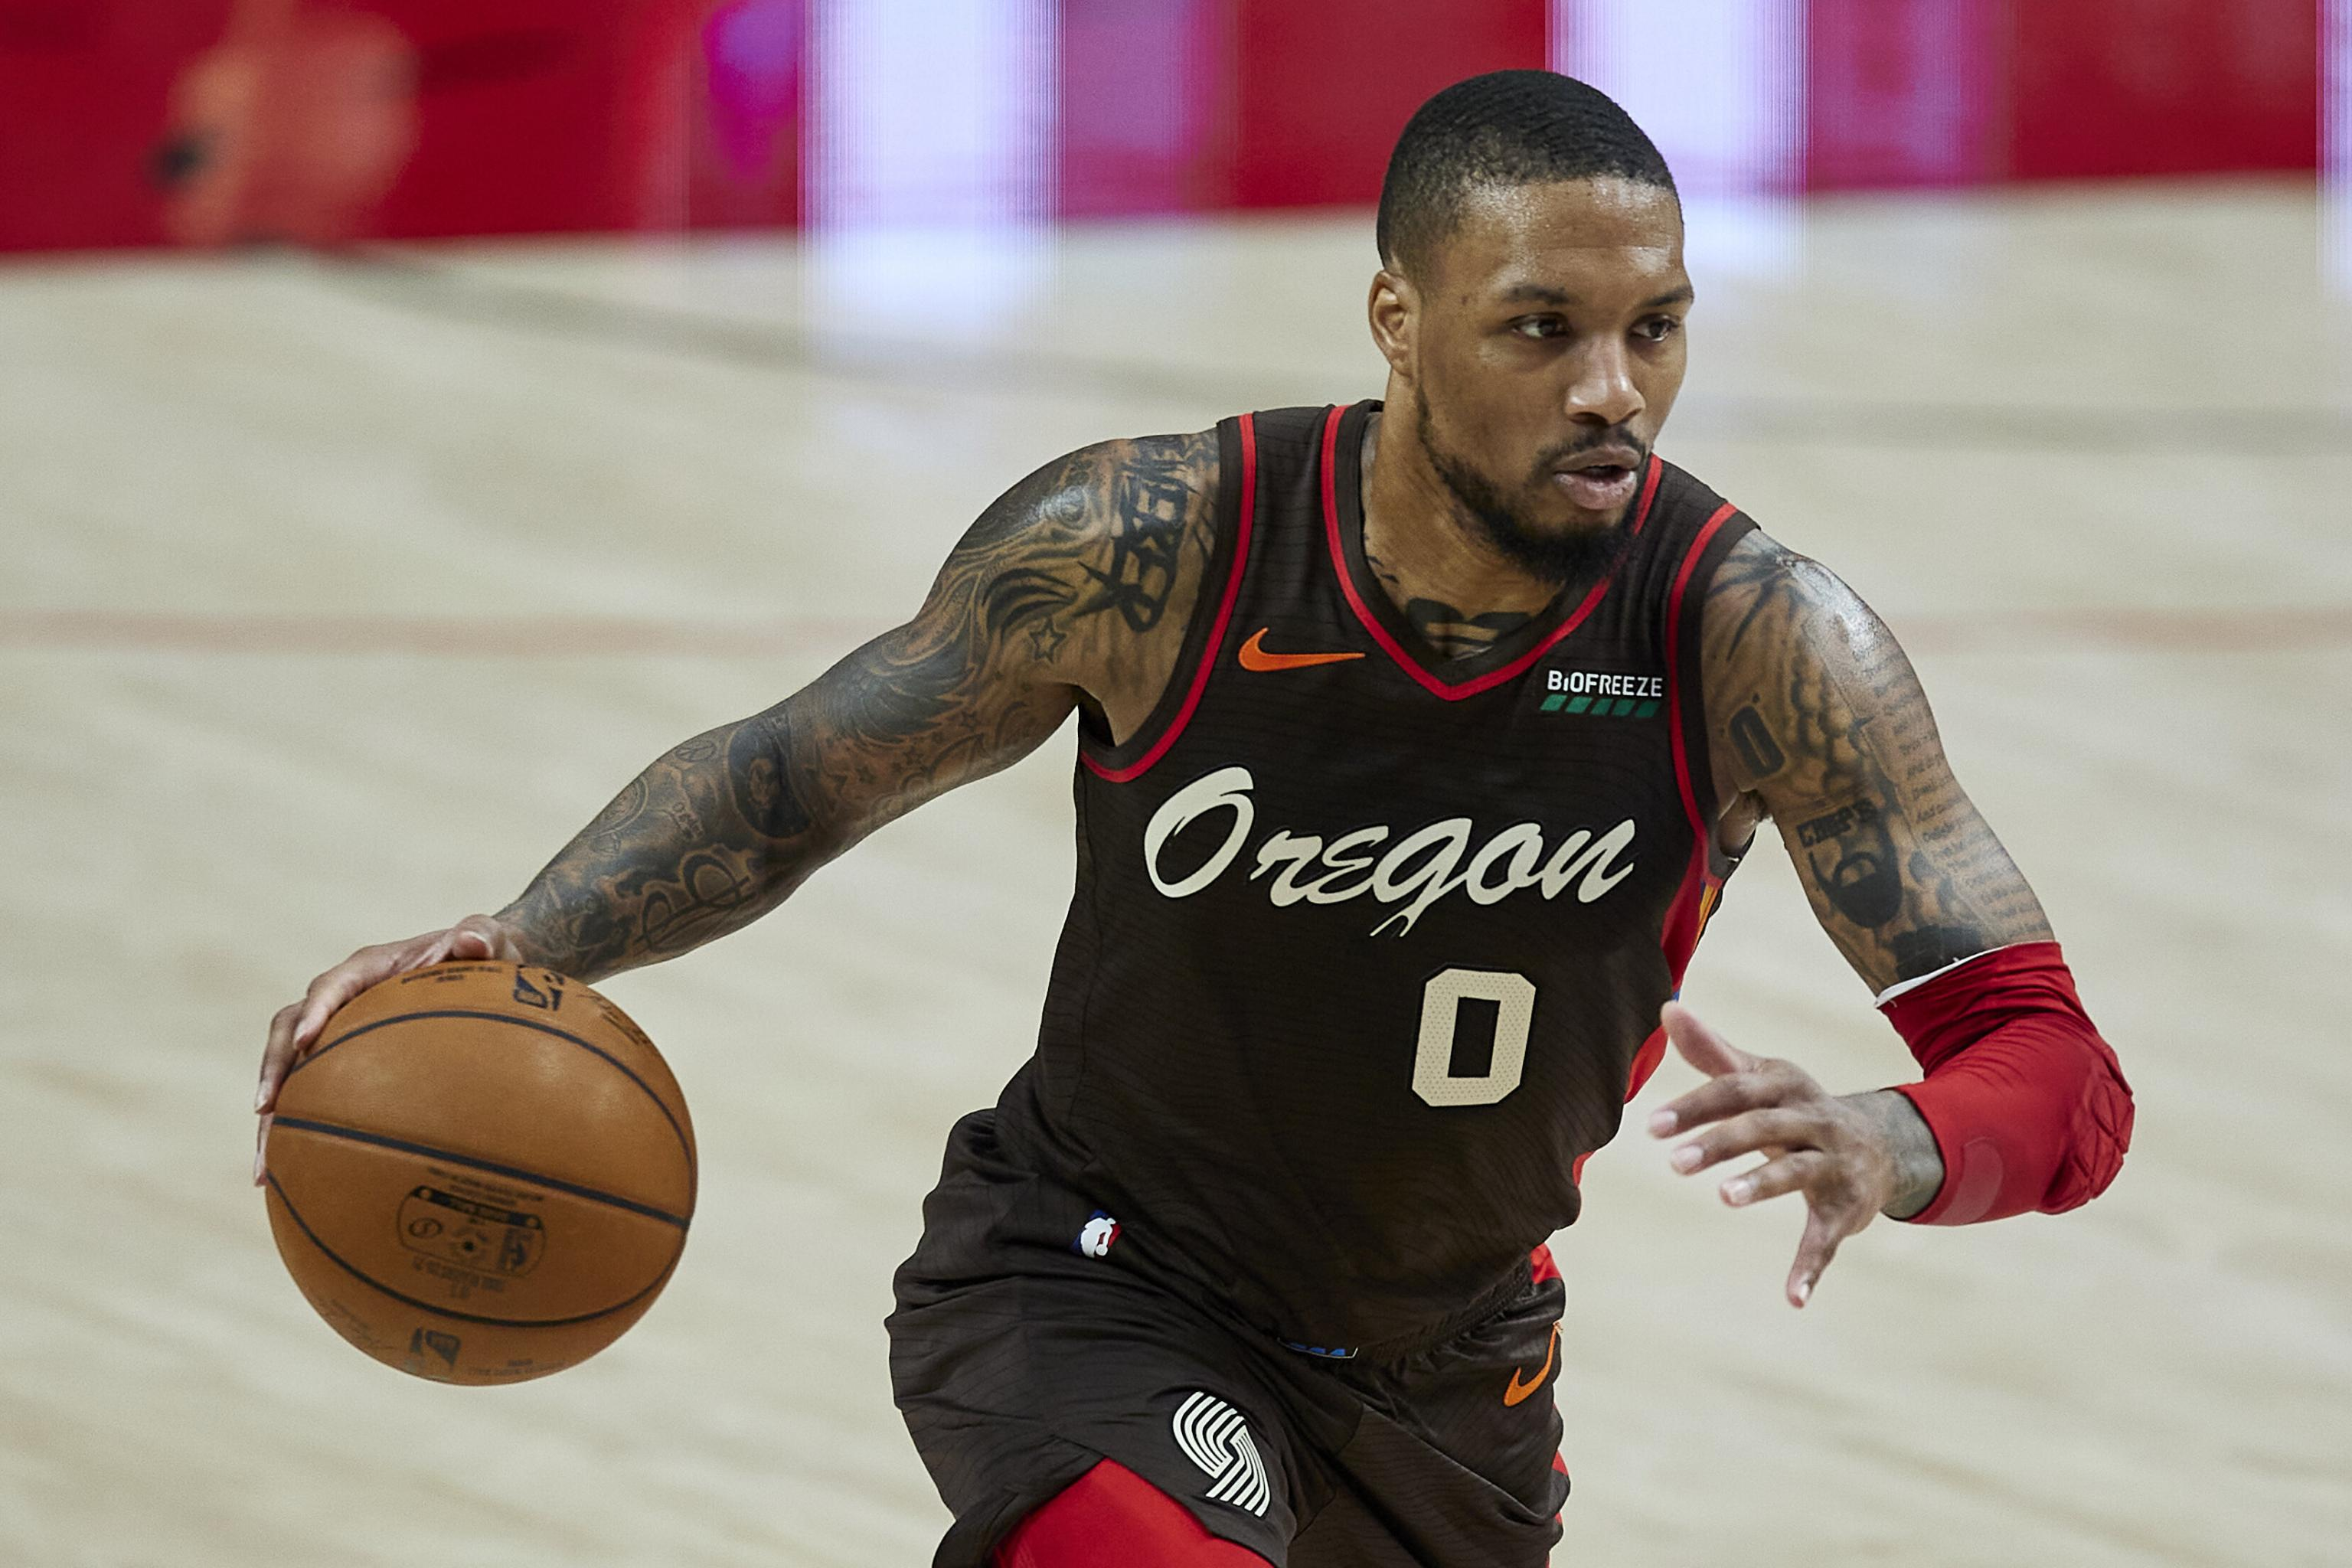 Damian Lillard Out For Trail Blazers Vs Spurs With Hamstring Injury Bleacher Report Latest News Videos And Highlights